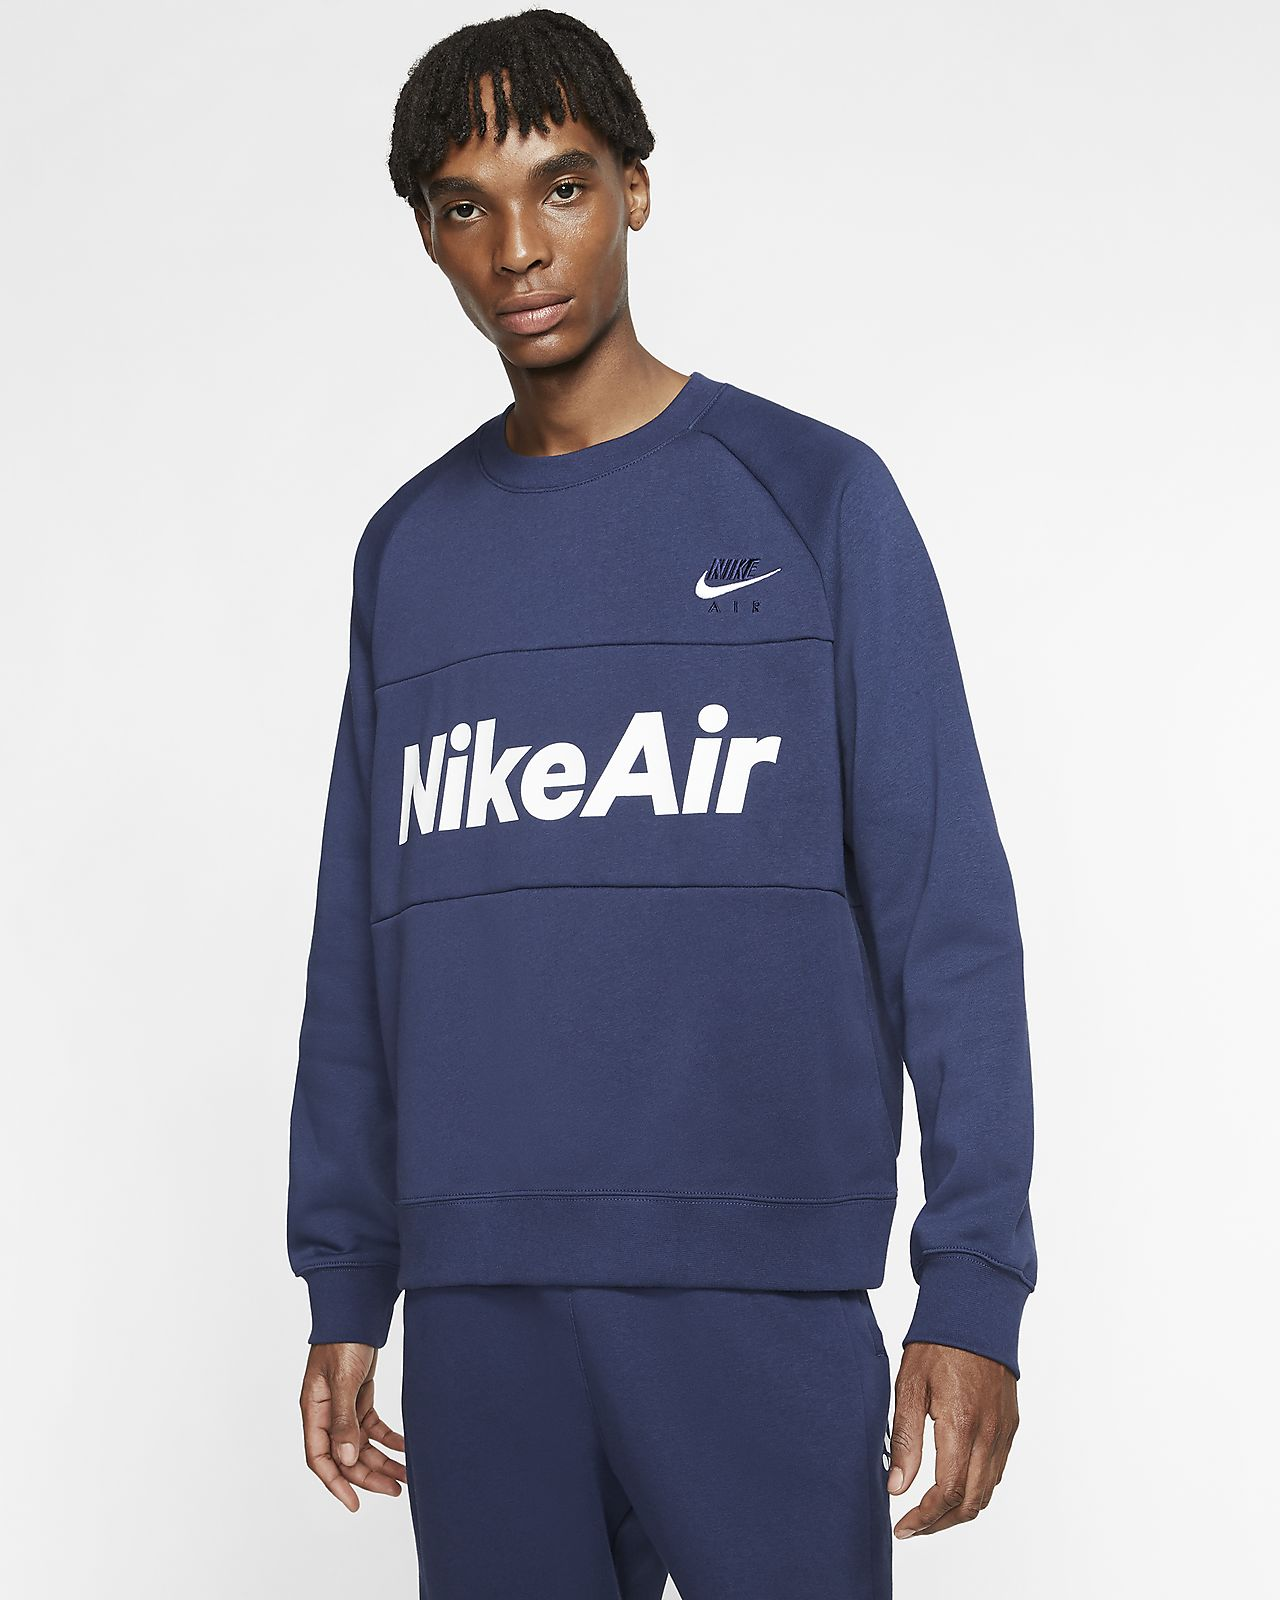 Nike Air fleecegenser til herre. Nike NO